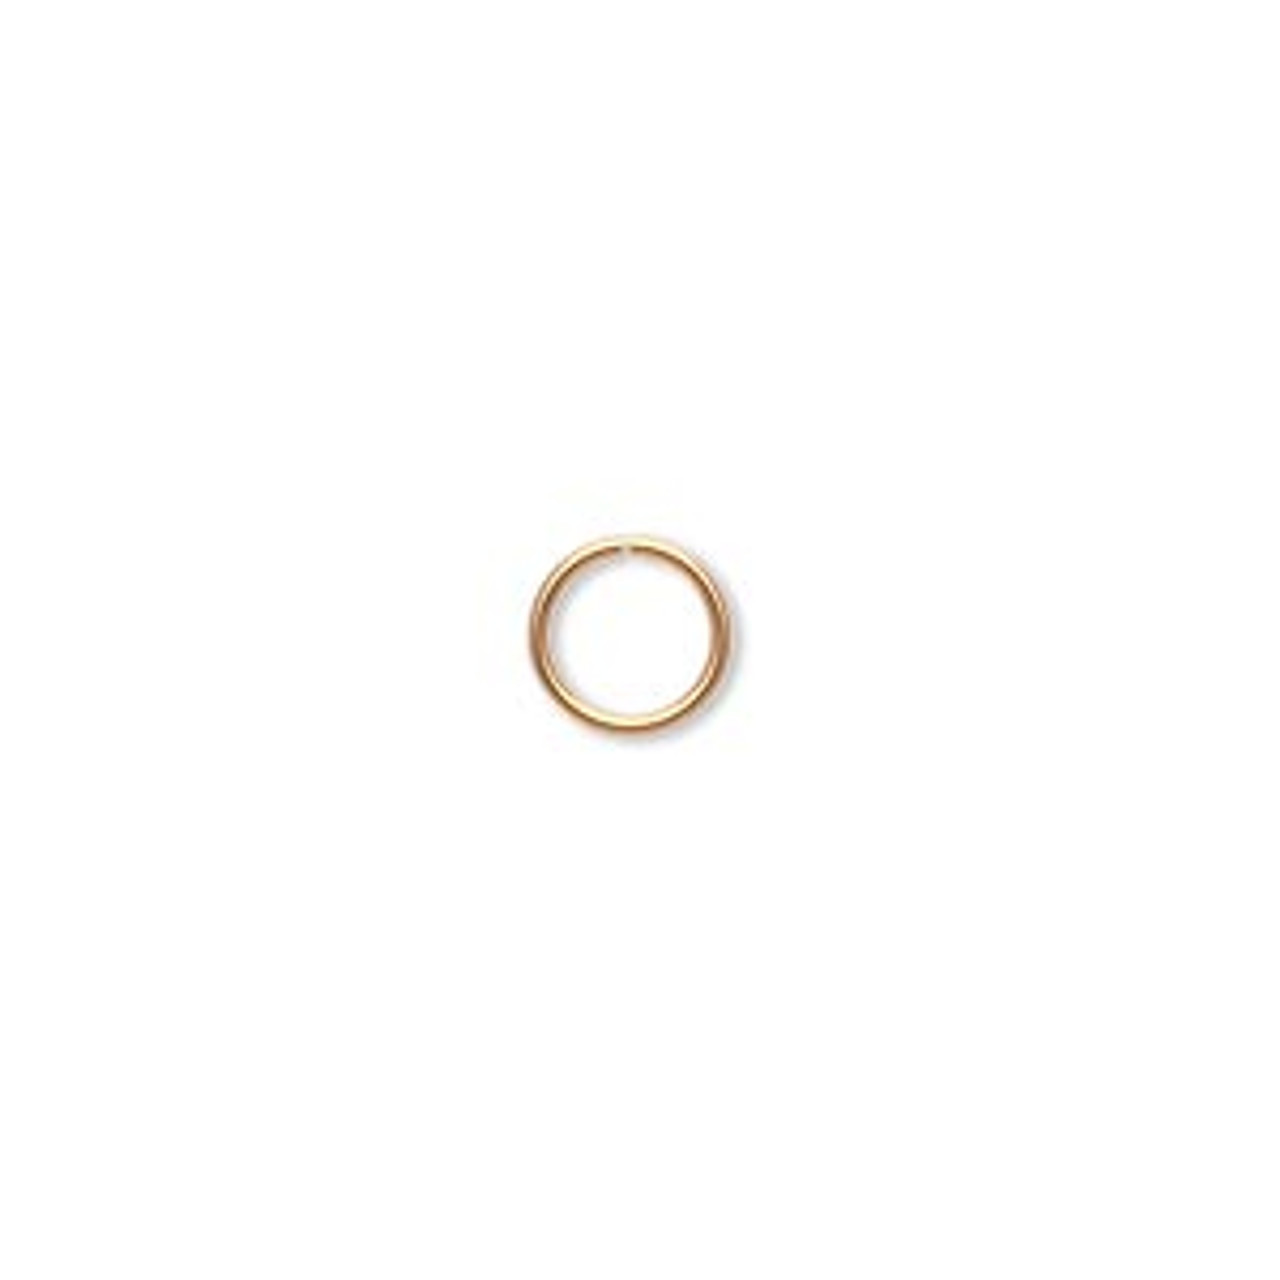 20ga. 7mm Gold Plated Jump Rings (100 Ct.)